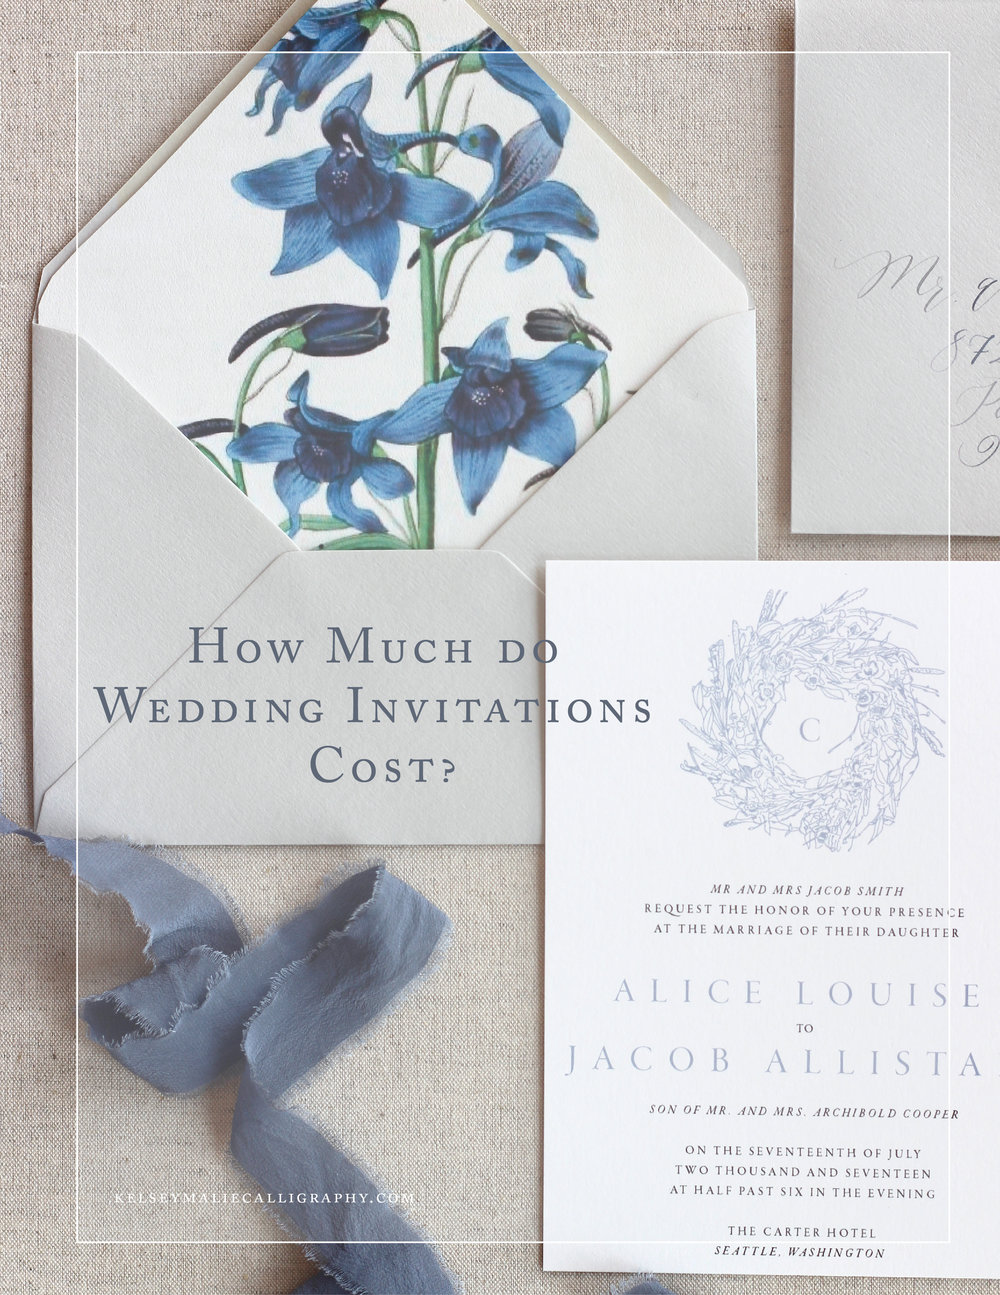 How much do wedding invitations cost kelsey malie for 200 wedding invitations cost